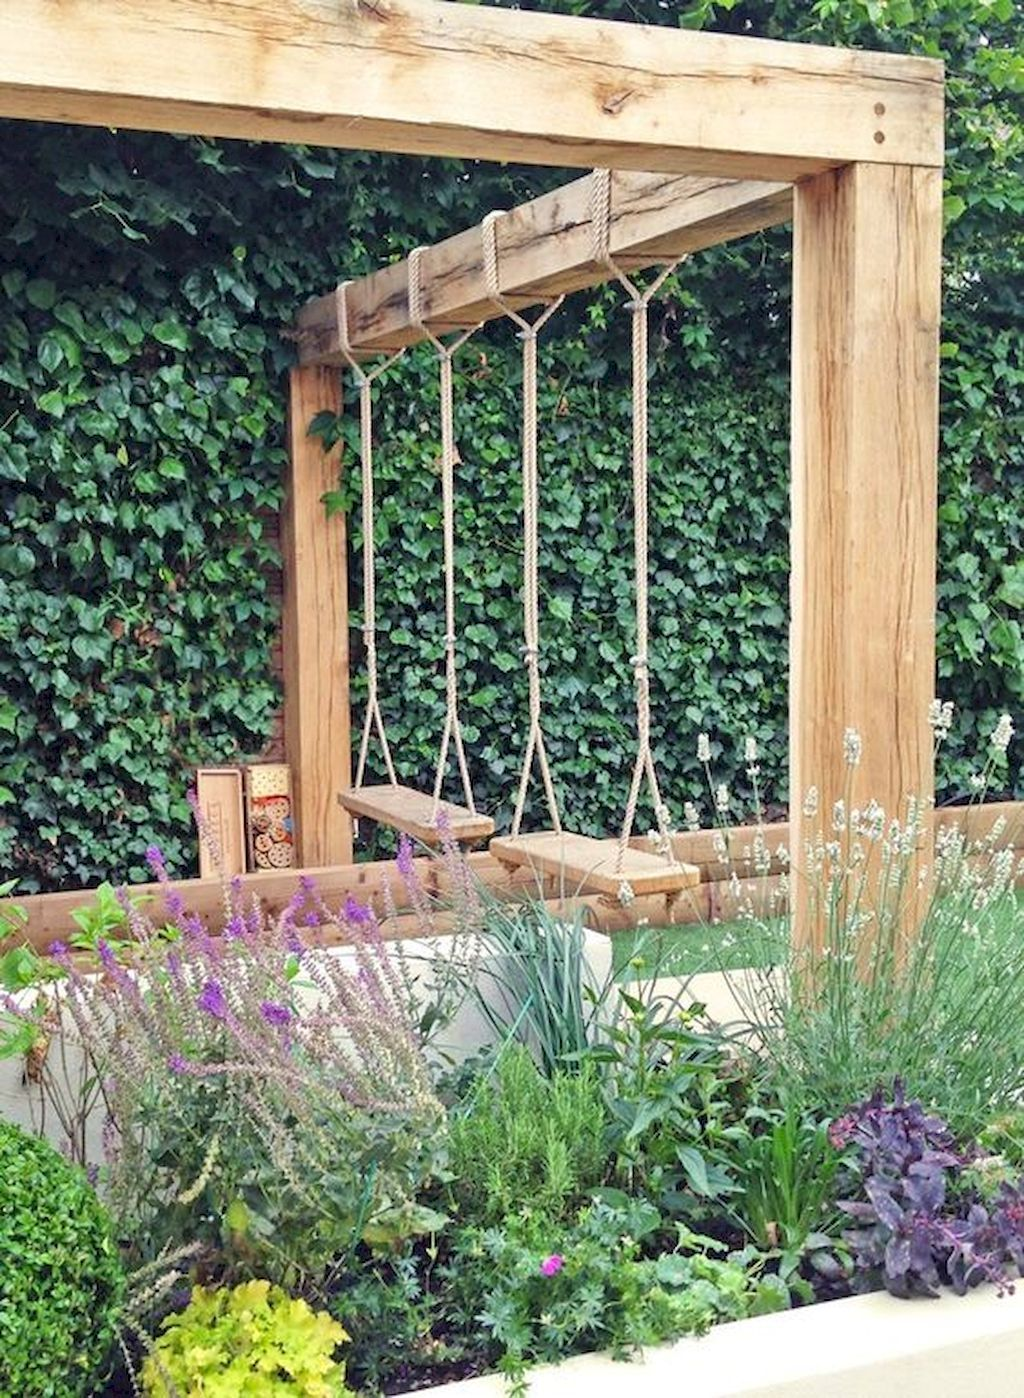 Cool 120 Stunning Romantic Backyard Garden Ideas on A Budget https ...